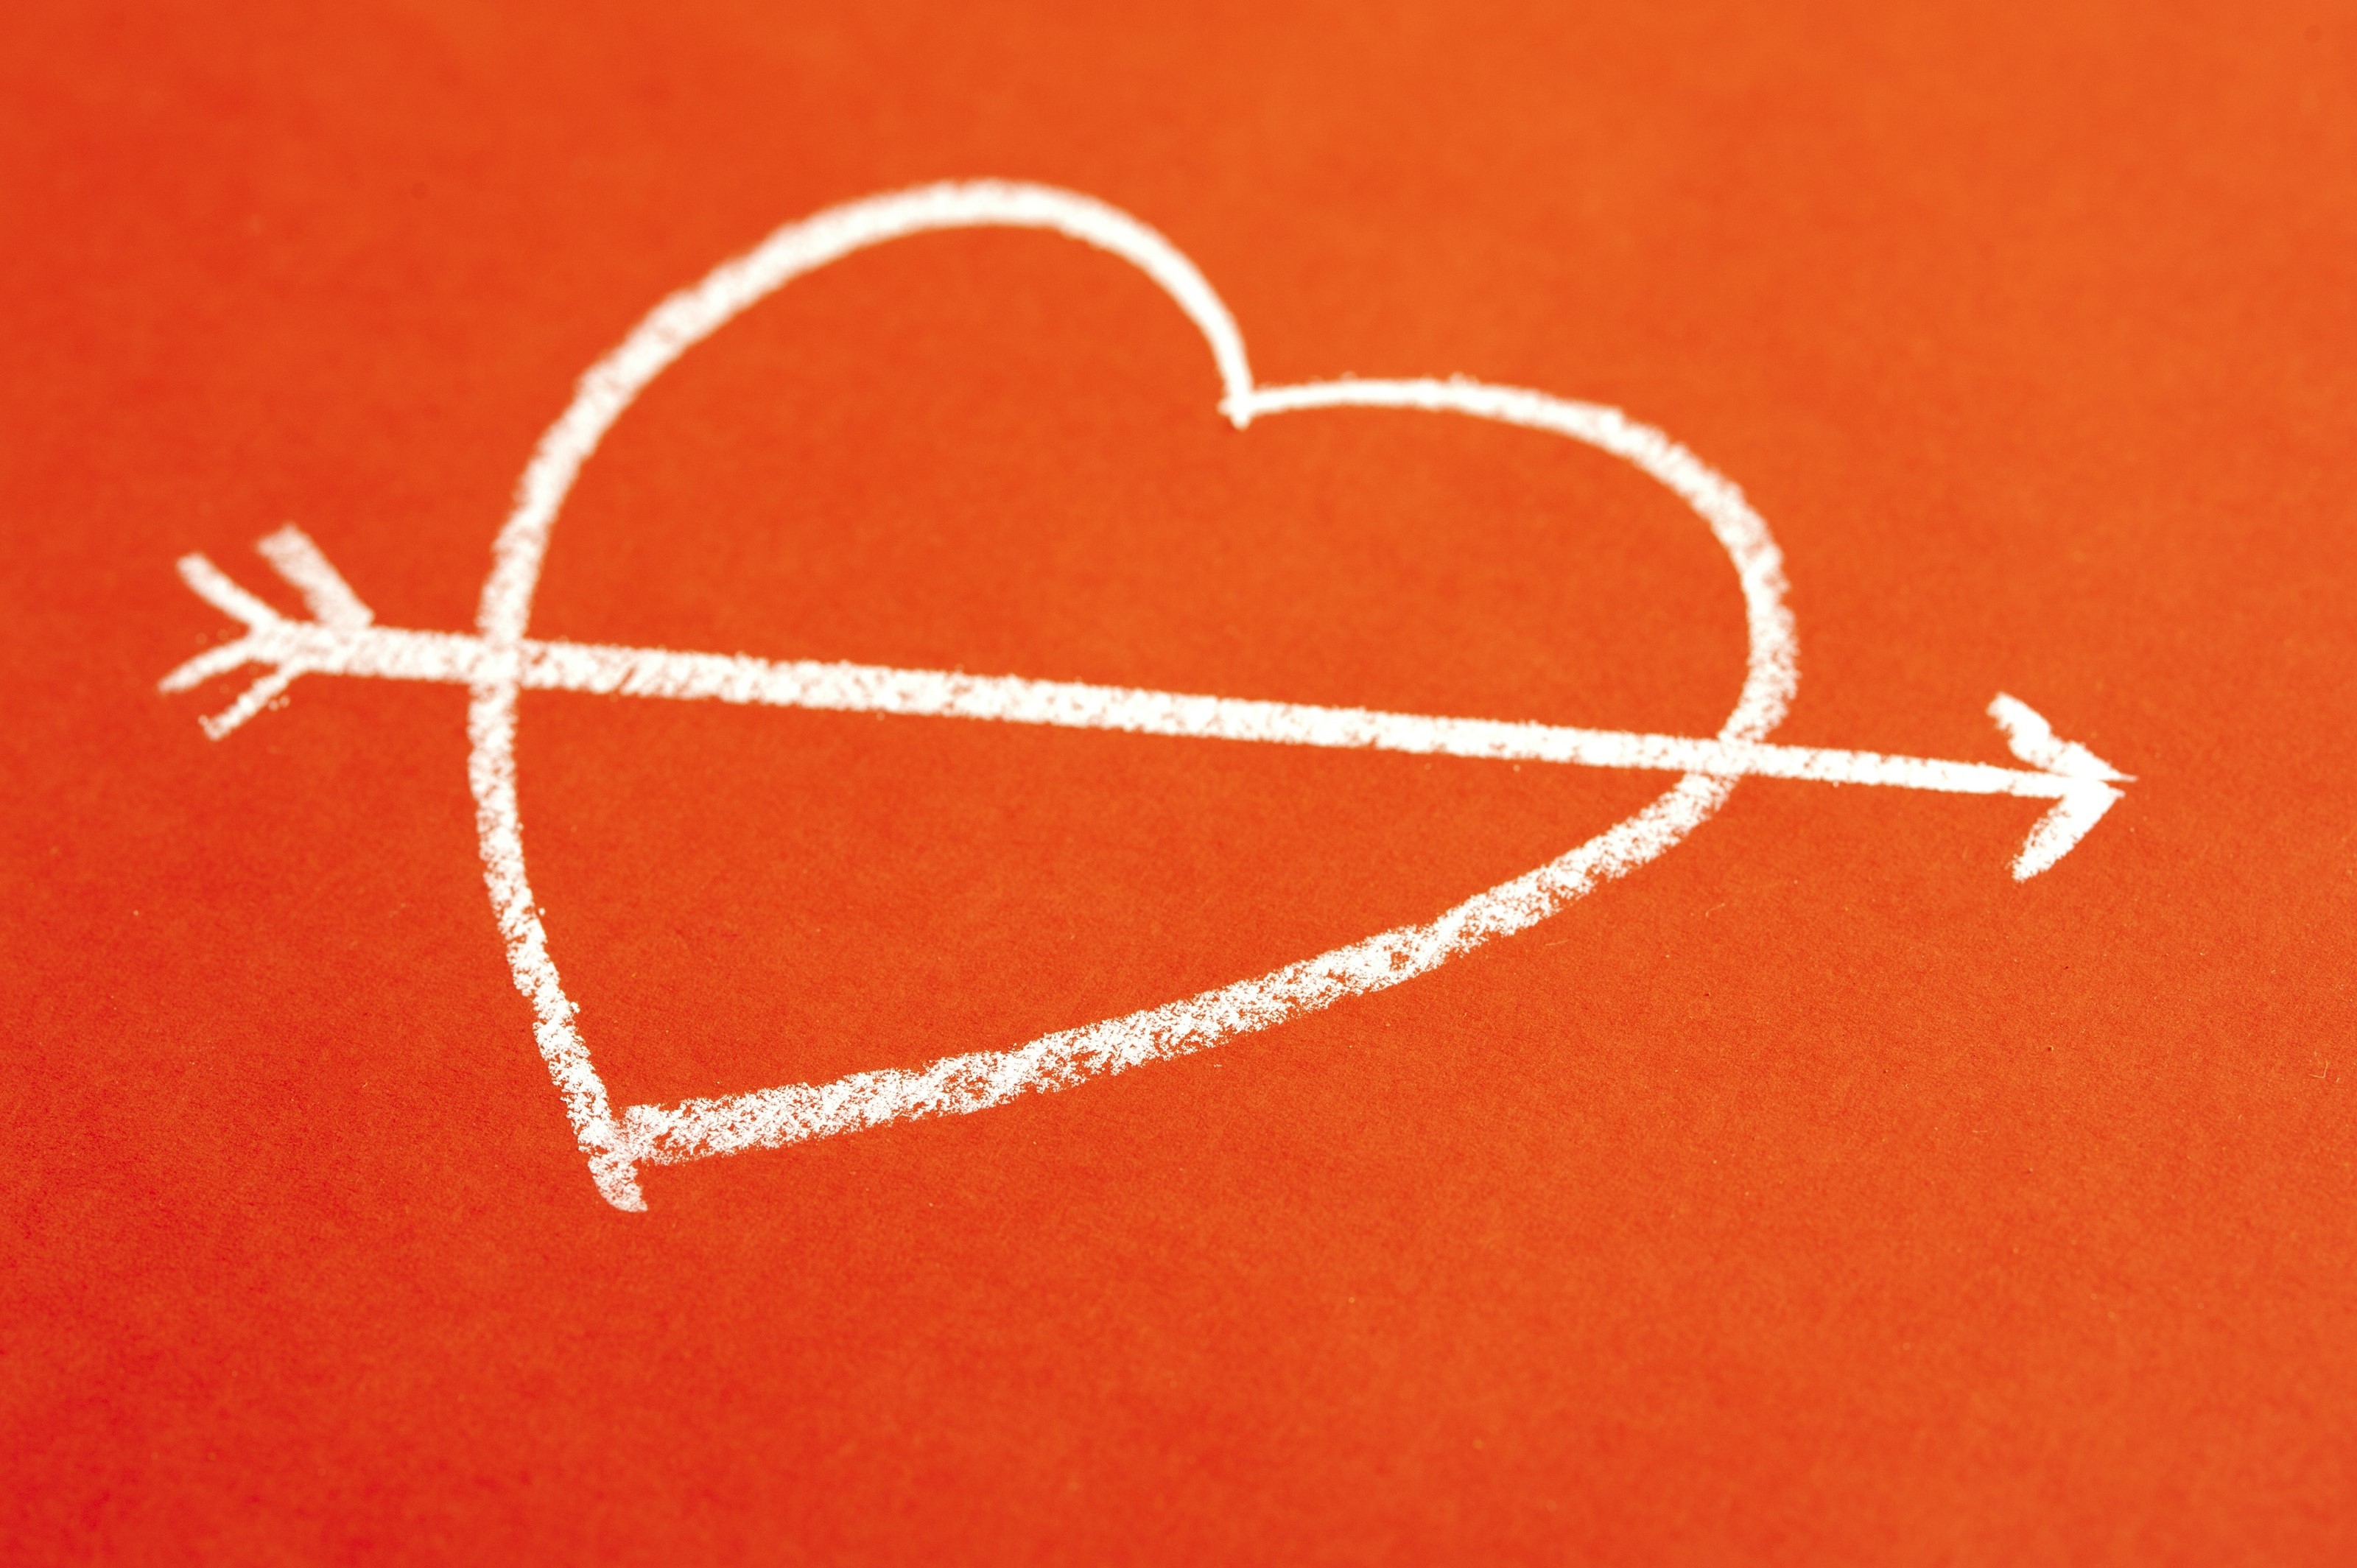 Free Image Of Love Heart And Arrow